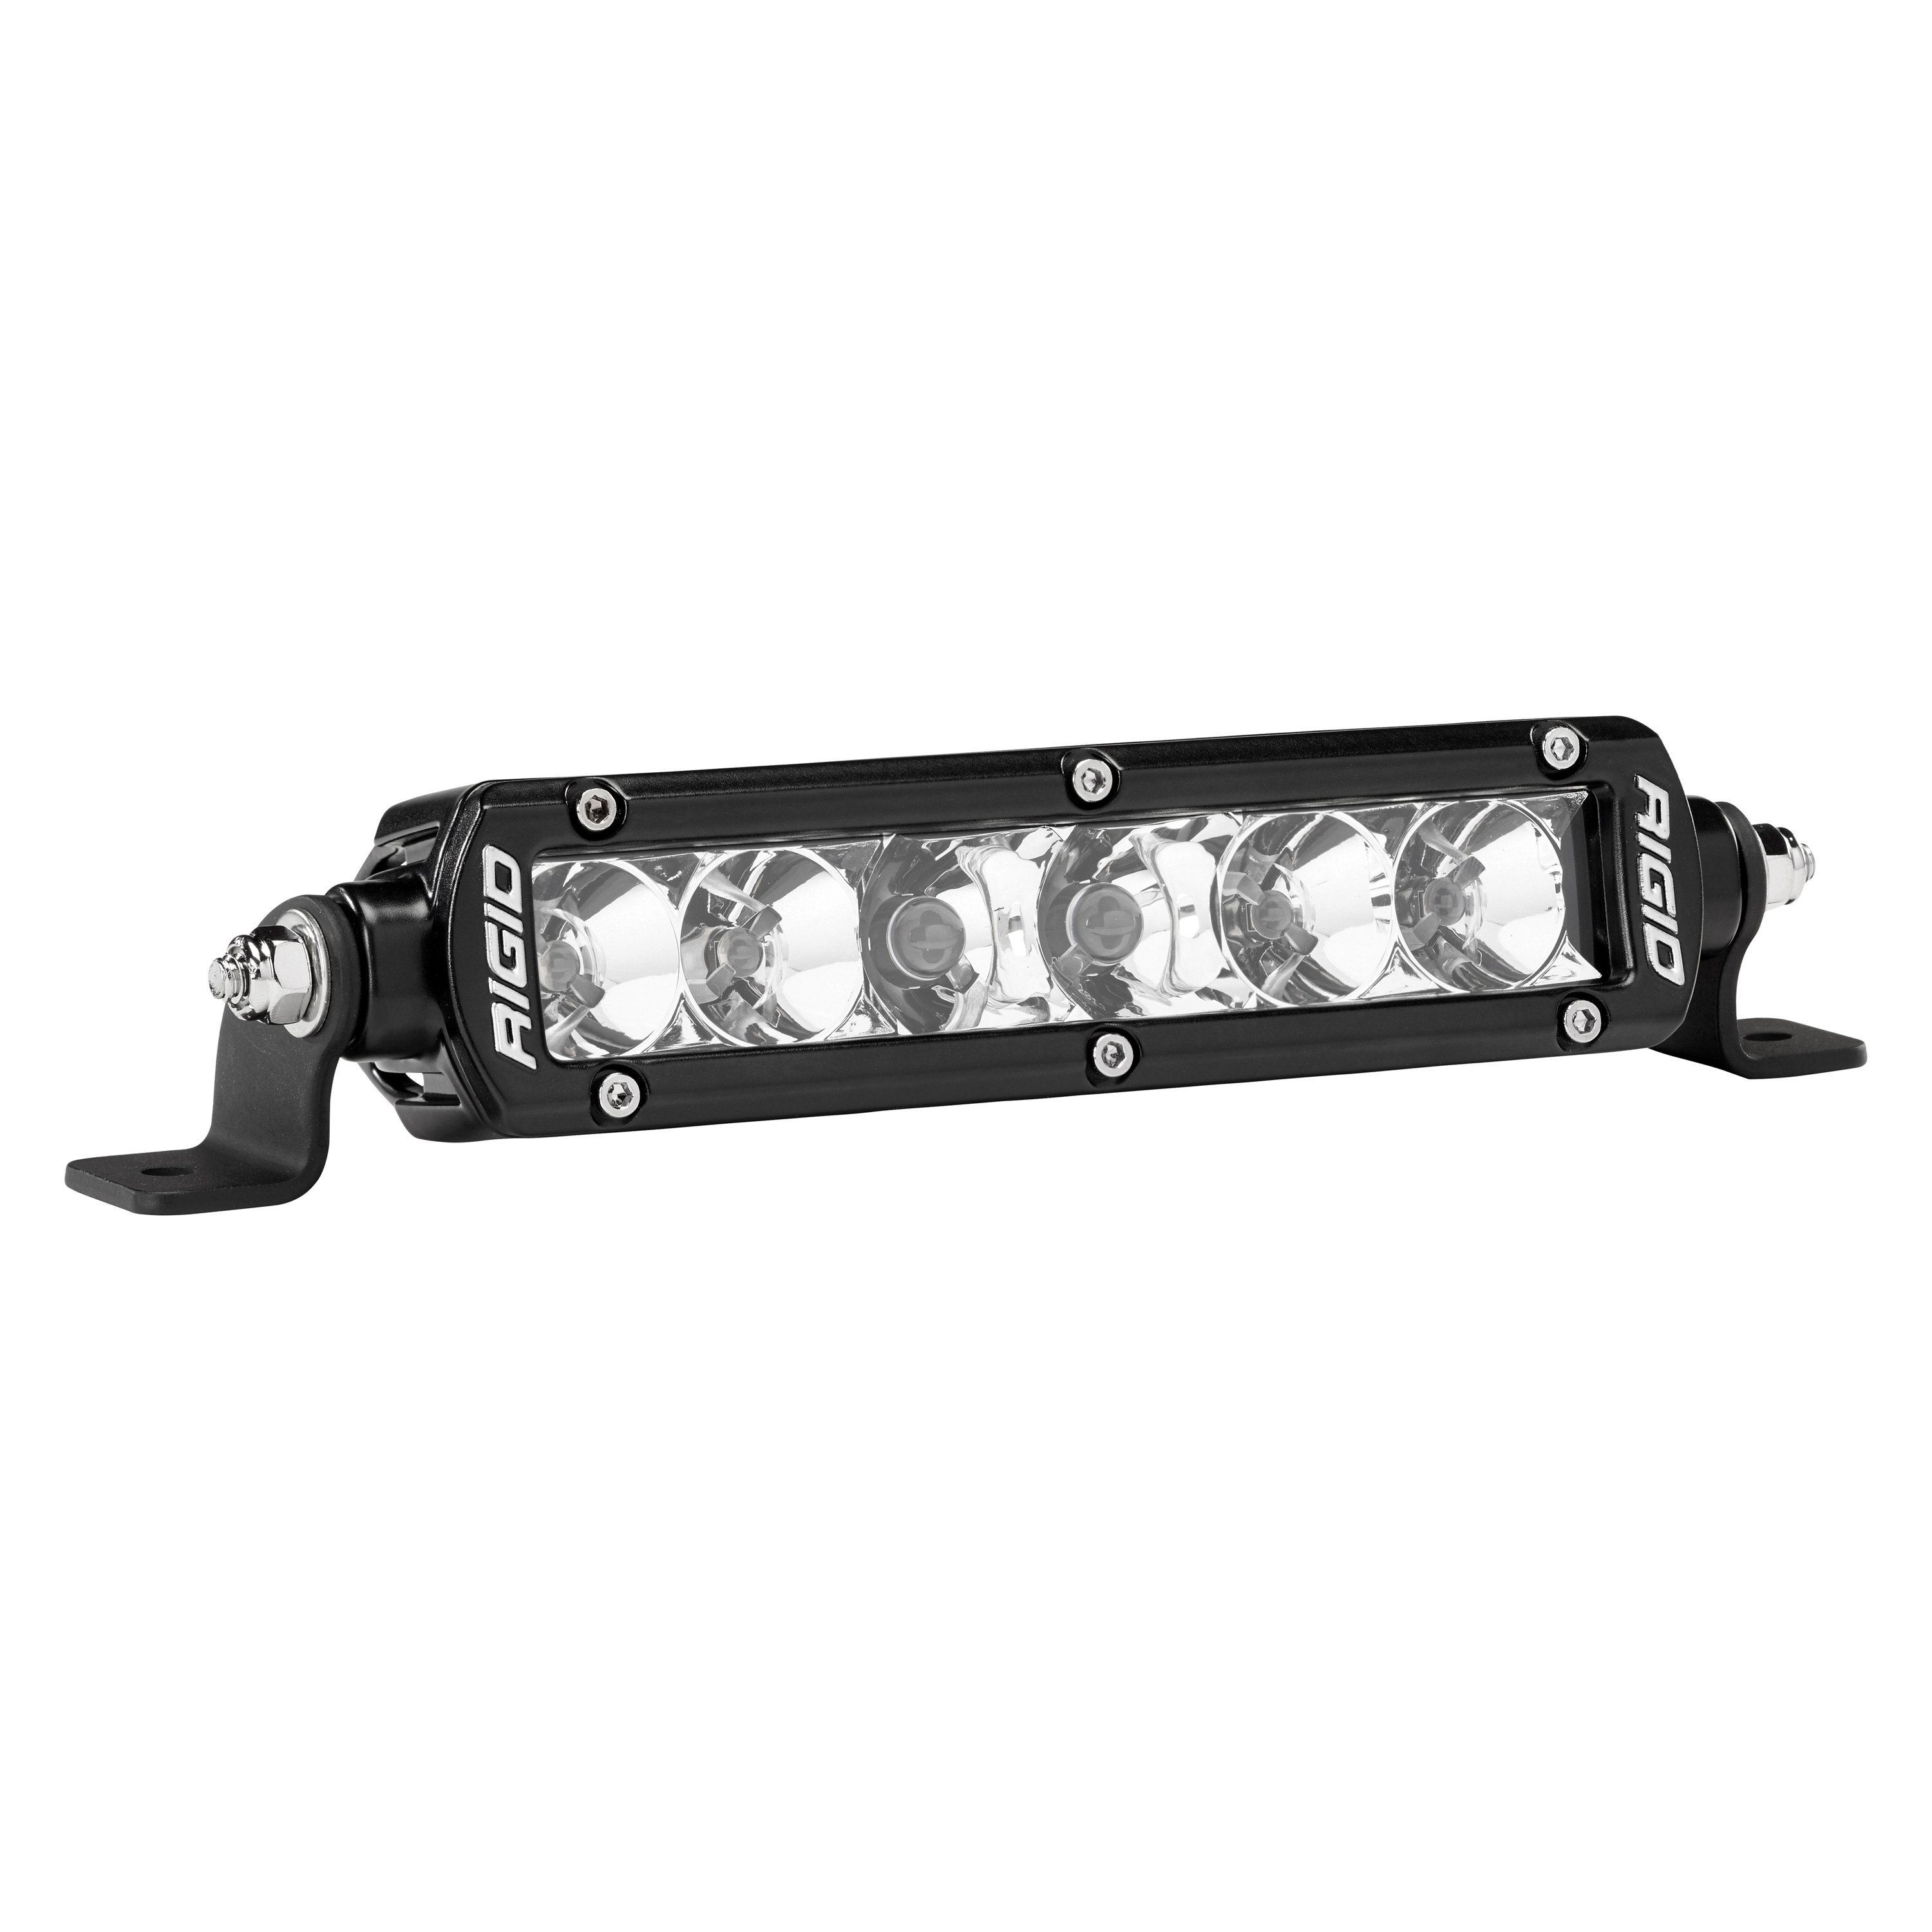 Rigid industries 906313 sr series pro 6 47w combo spotflood rigid industries sr series pro 6 47w combo spotflood beam aloadofball Images